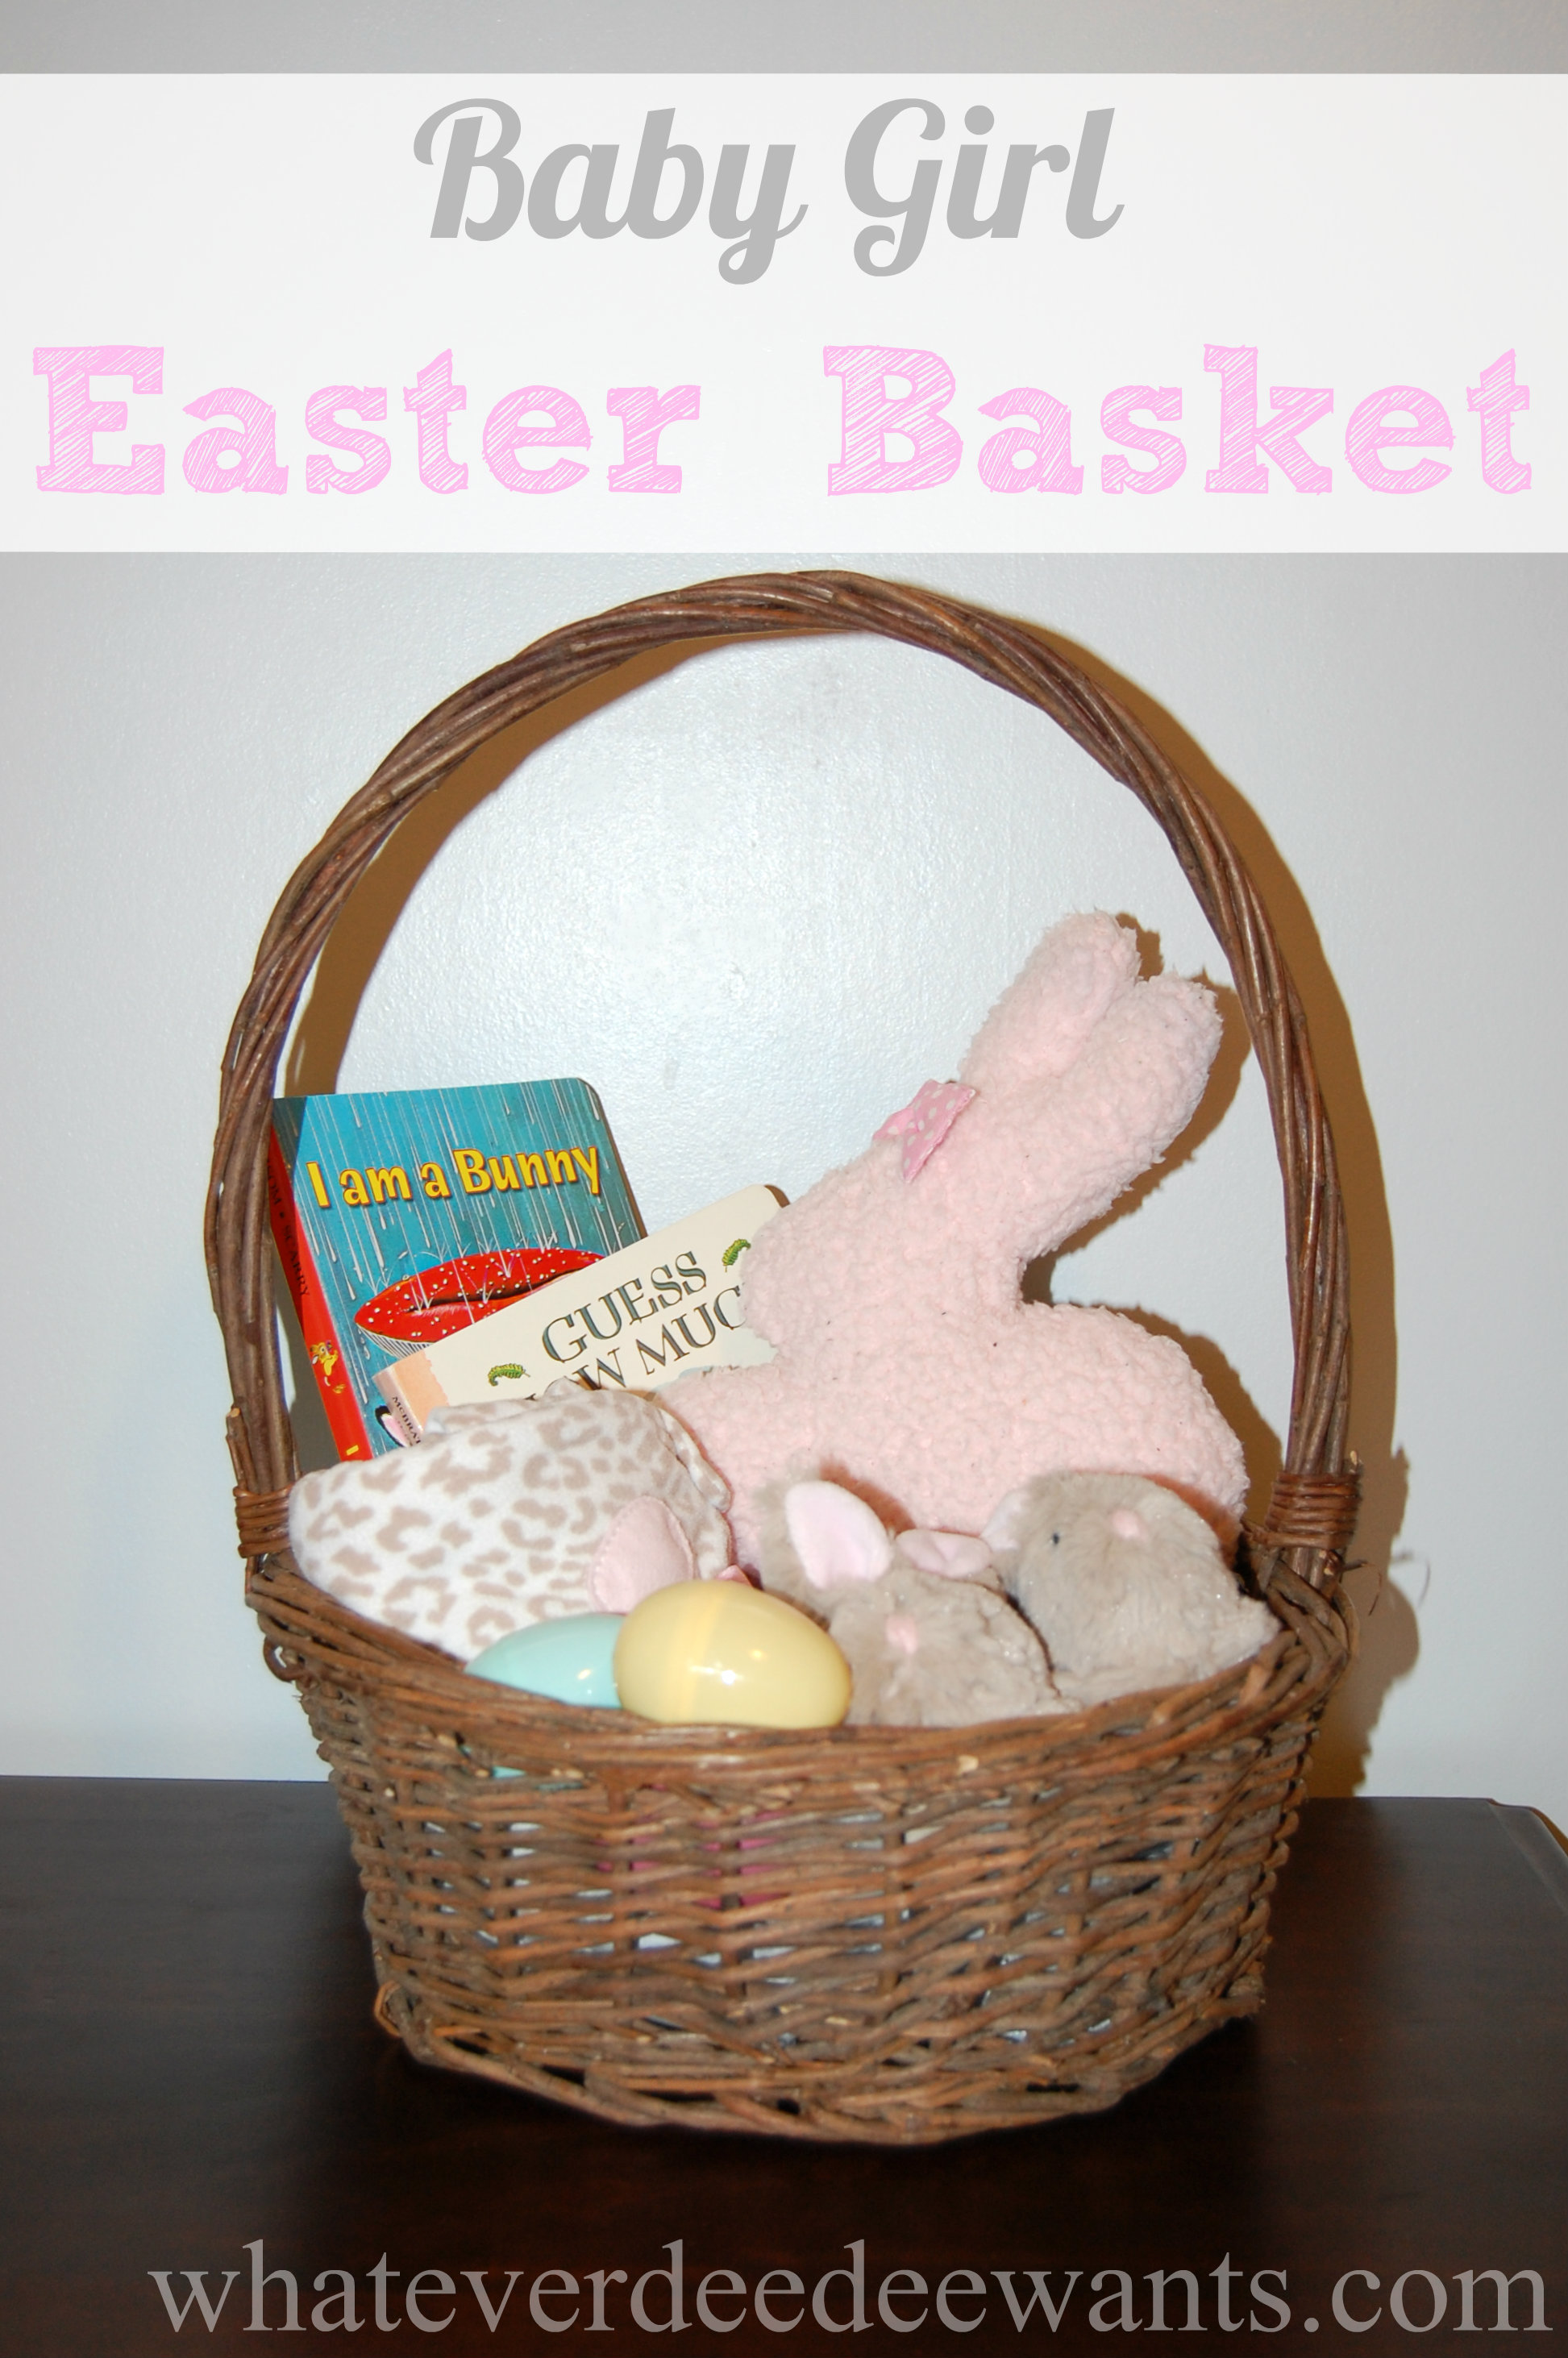 Peter rabbit candy free easter basket live like you are rich peter rabbit candy free easter basket negle Image collections